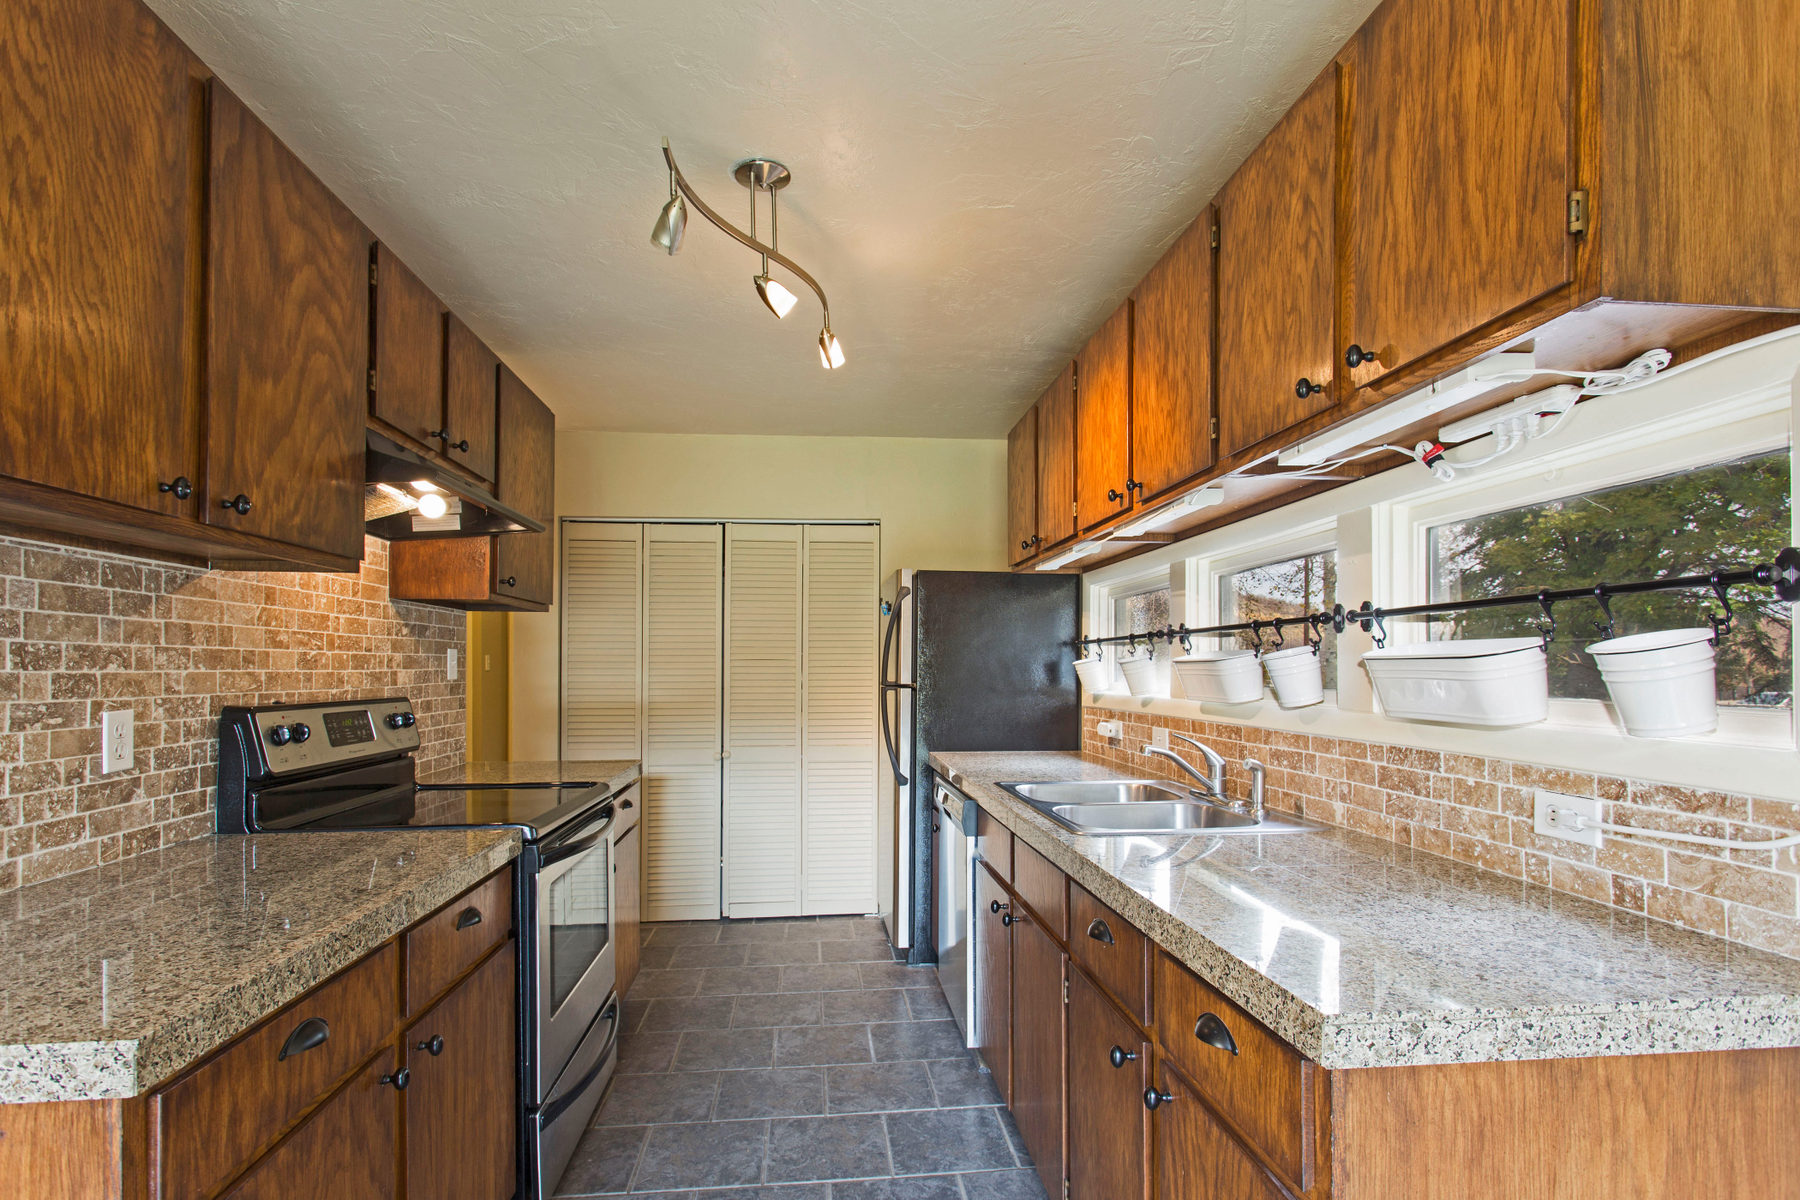 Condominium for Sale at Remodeled and Lowest Priced Two Bedroom Condo in Town 1900 Homestake Rd #5 Park City, Utah 84060 United States